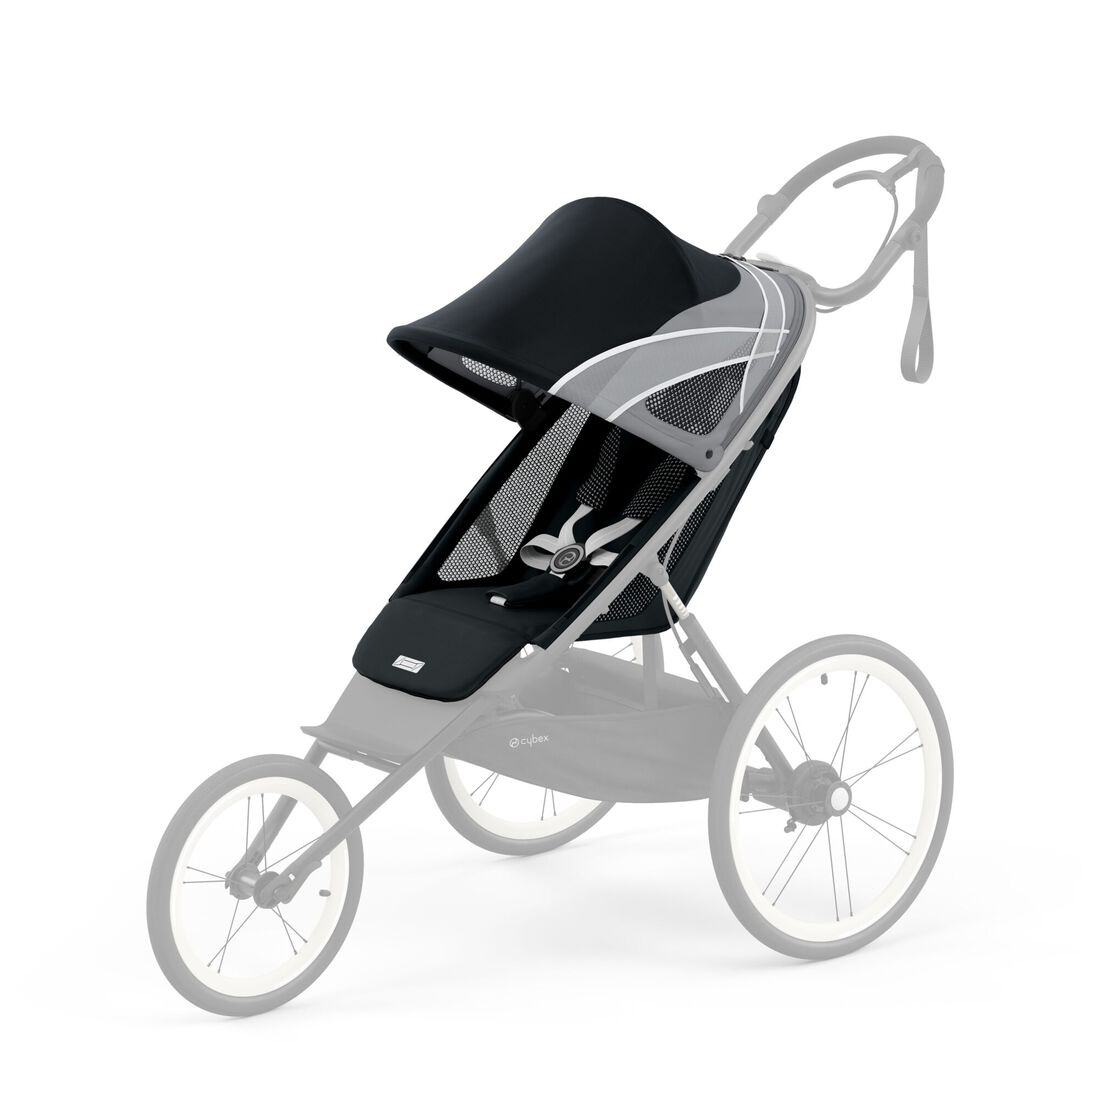 CYBEX Avi One Box - All Black in All Black large image number 3